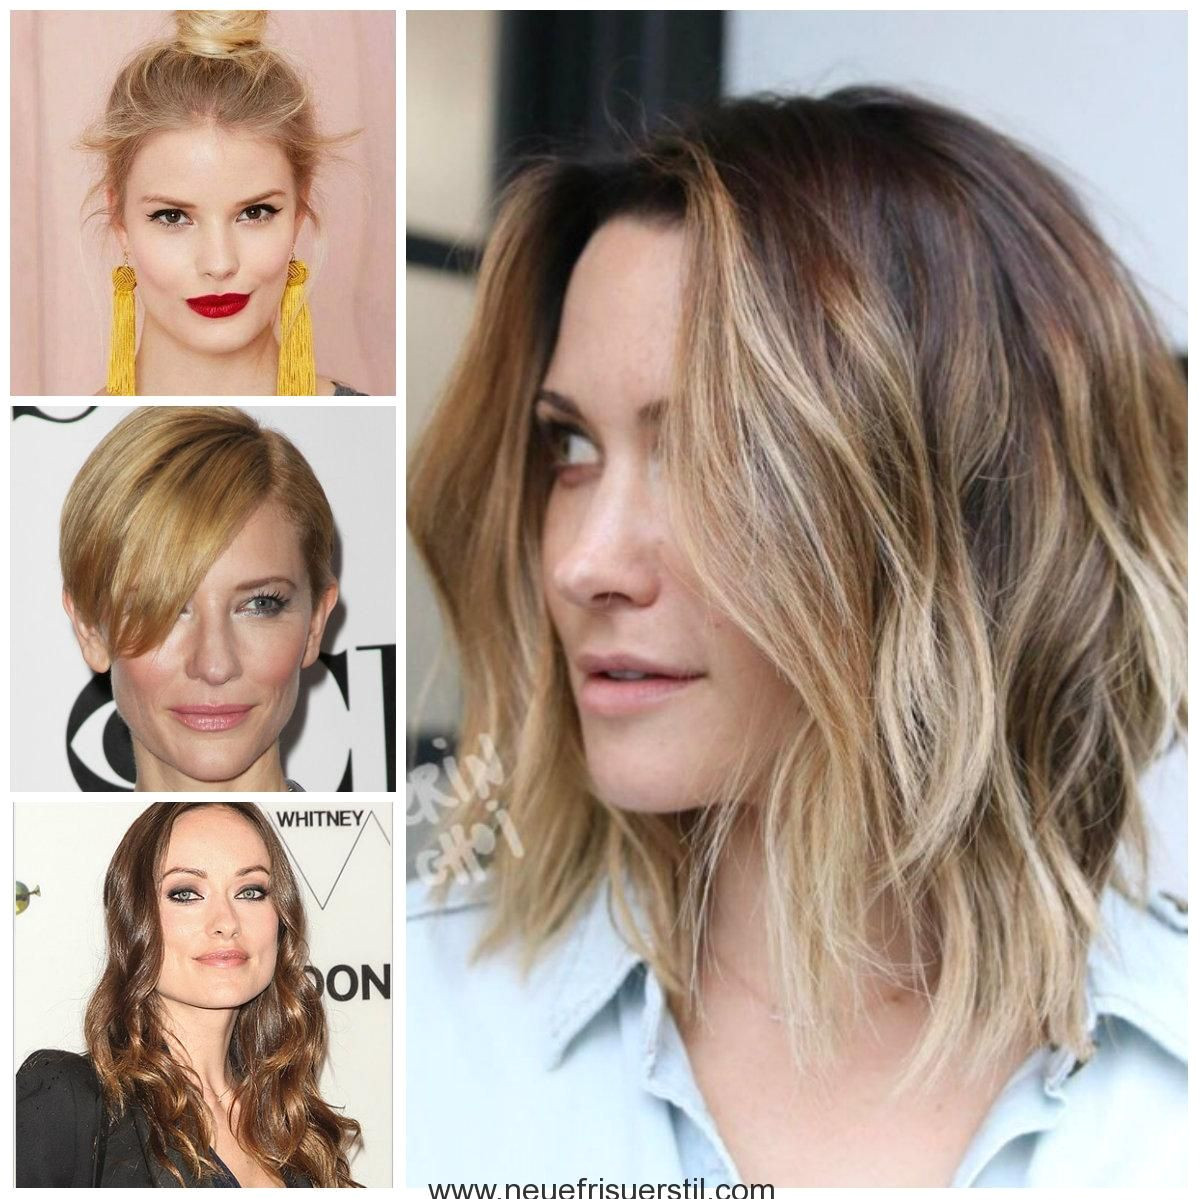 Hairstyles for women with square faces in 2018 Tagswomenhairstylesfacessquare